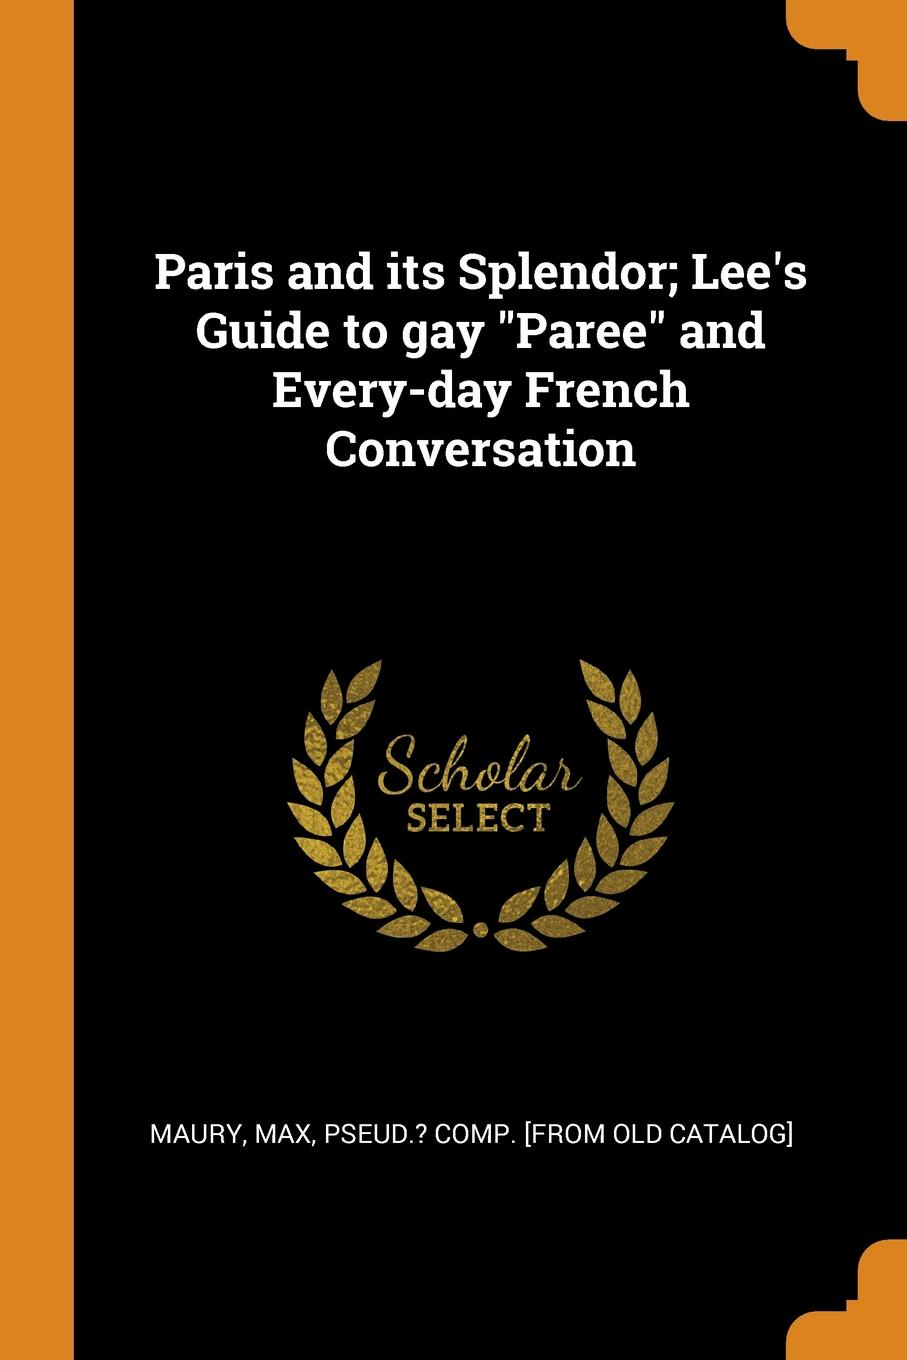 Paris and its Splendor; Lee.s Guide to gay Paree and Every-day French Conversation max maury the standard guide to paris and every day french conversation